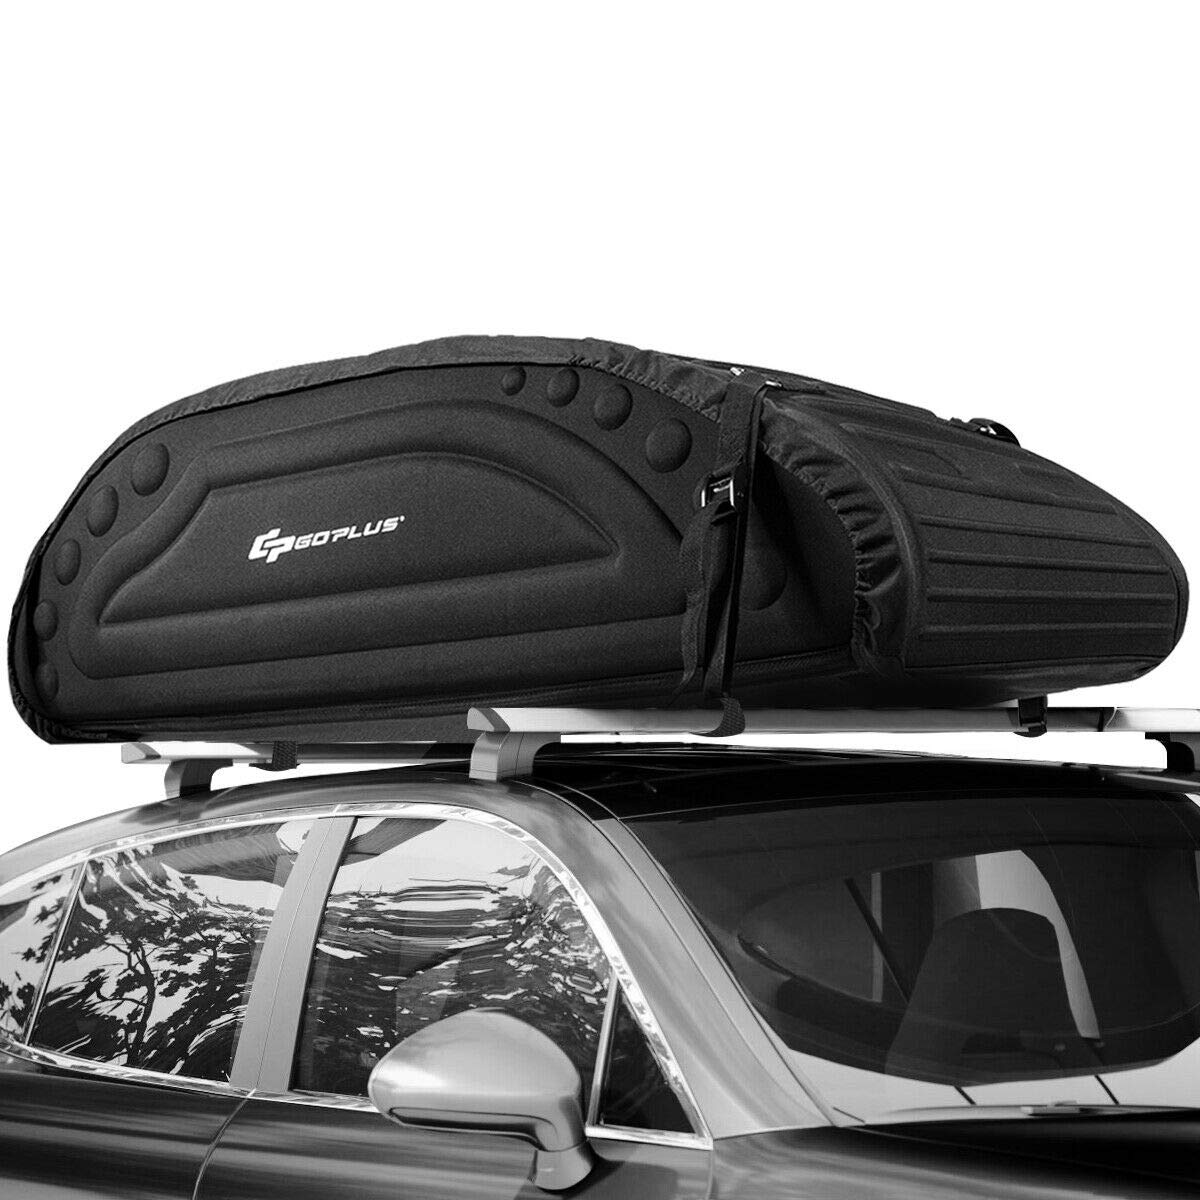 Goplus Car Roof Bag, 15 Cubic Feet Roof Top Cargo Carrier, Weather Resistant Soft-Shell Carrier, Water Proof Cargo Bag w/Heavy Duty Straps, Universal Luggage Carrier for Jeep, Car, SUV (Black) by Goplus